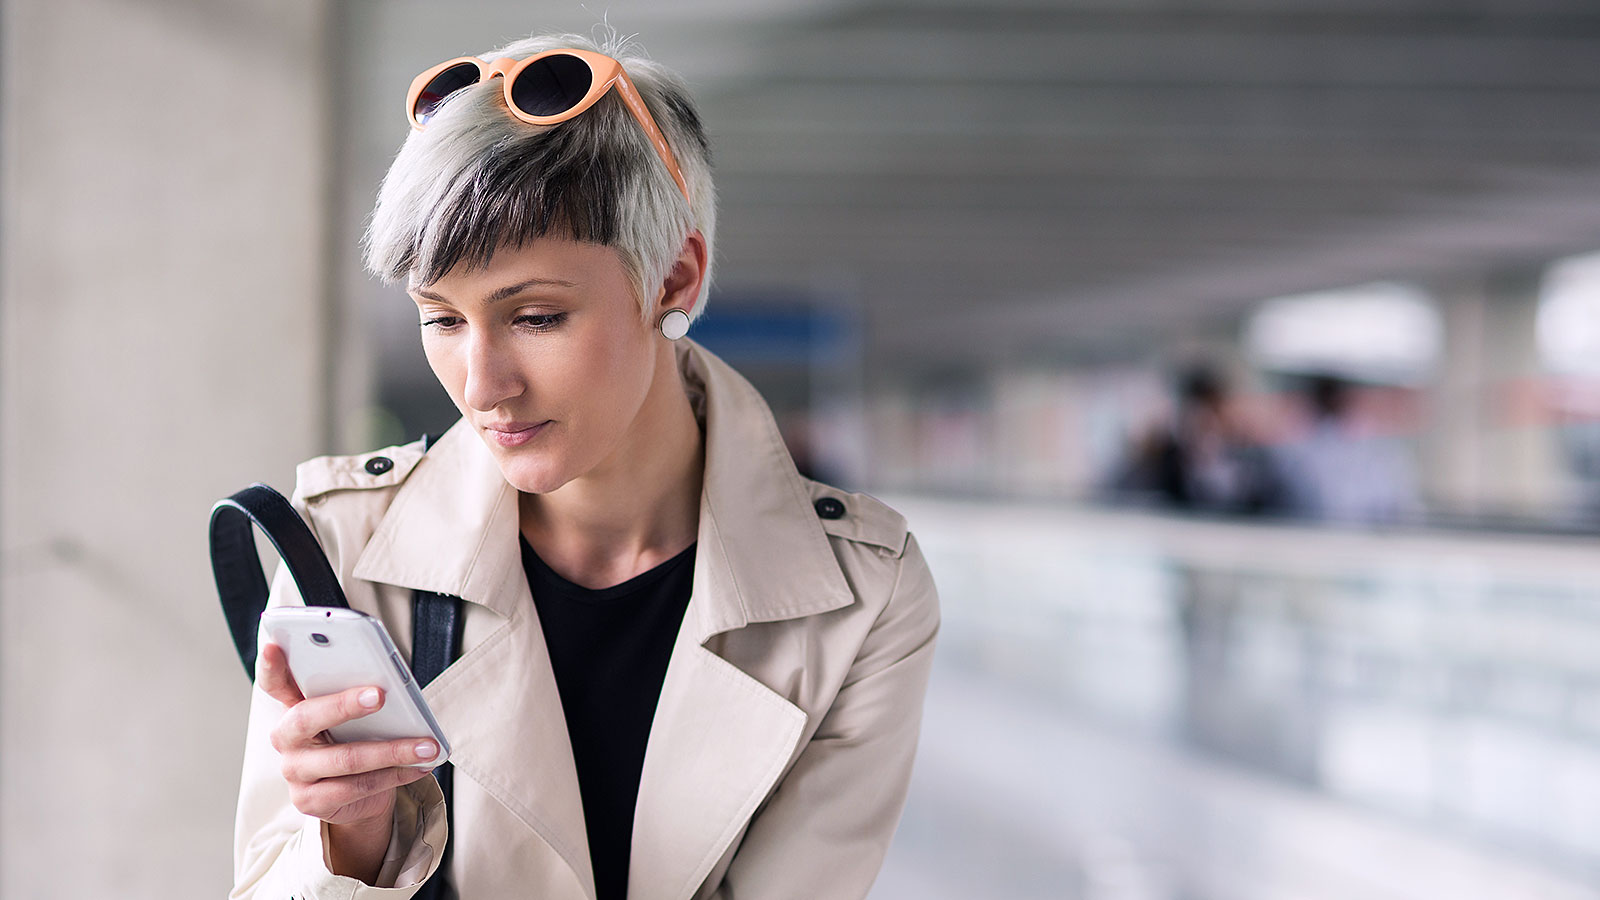 11 must-have travel apps that will help you during your next vacation or business trip